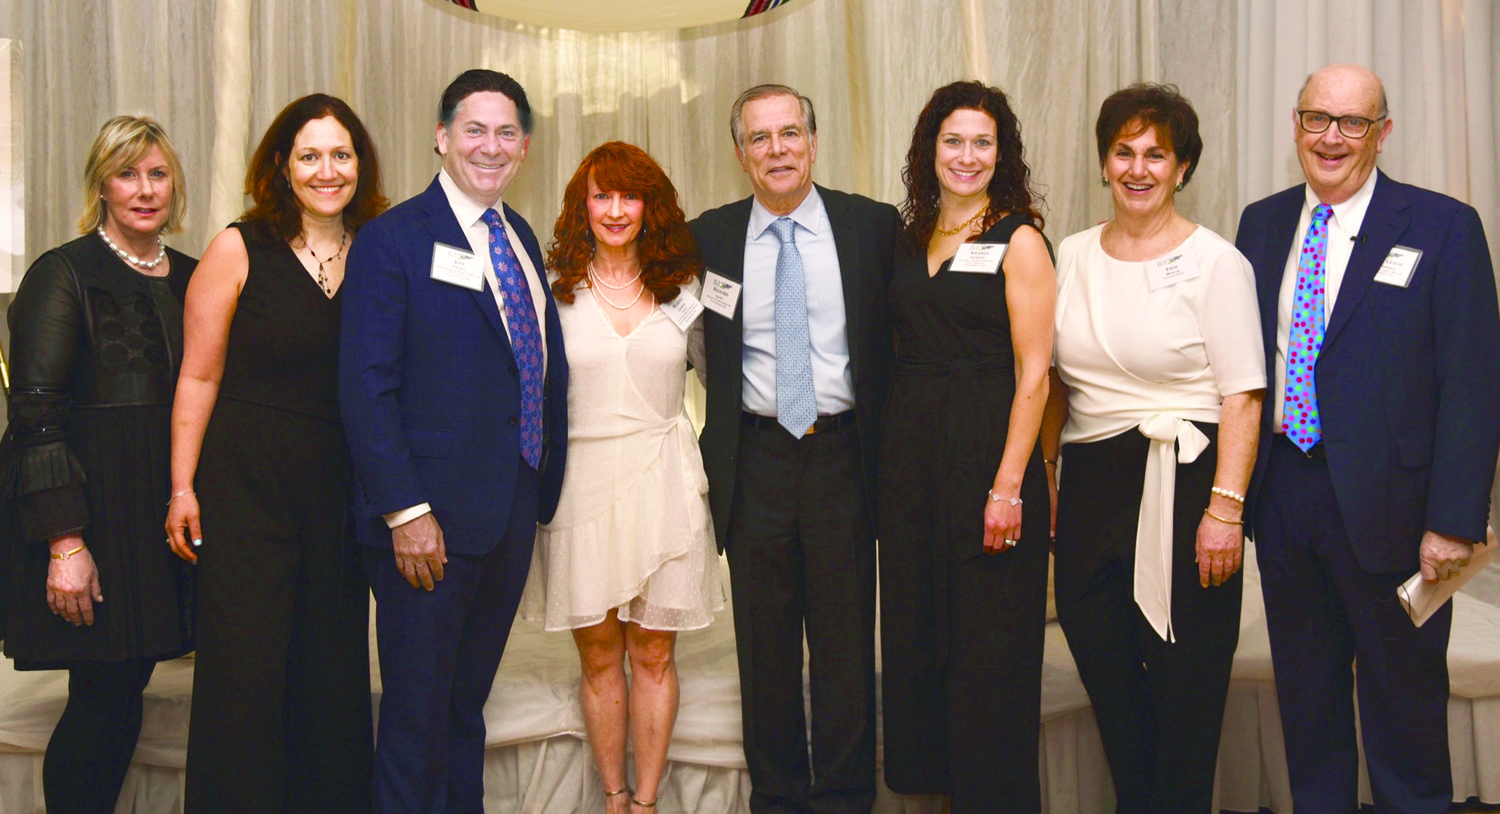 At the gala (left to right): Susan Bazar,  Mindy Stone, Jeffrey M. Padwa,  Marisa Garber,  Richard A. Licht, Amanda Isenberg, Erin Minior,  and Rabbi Les Gutterman.